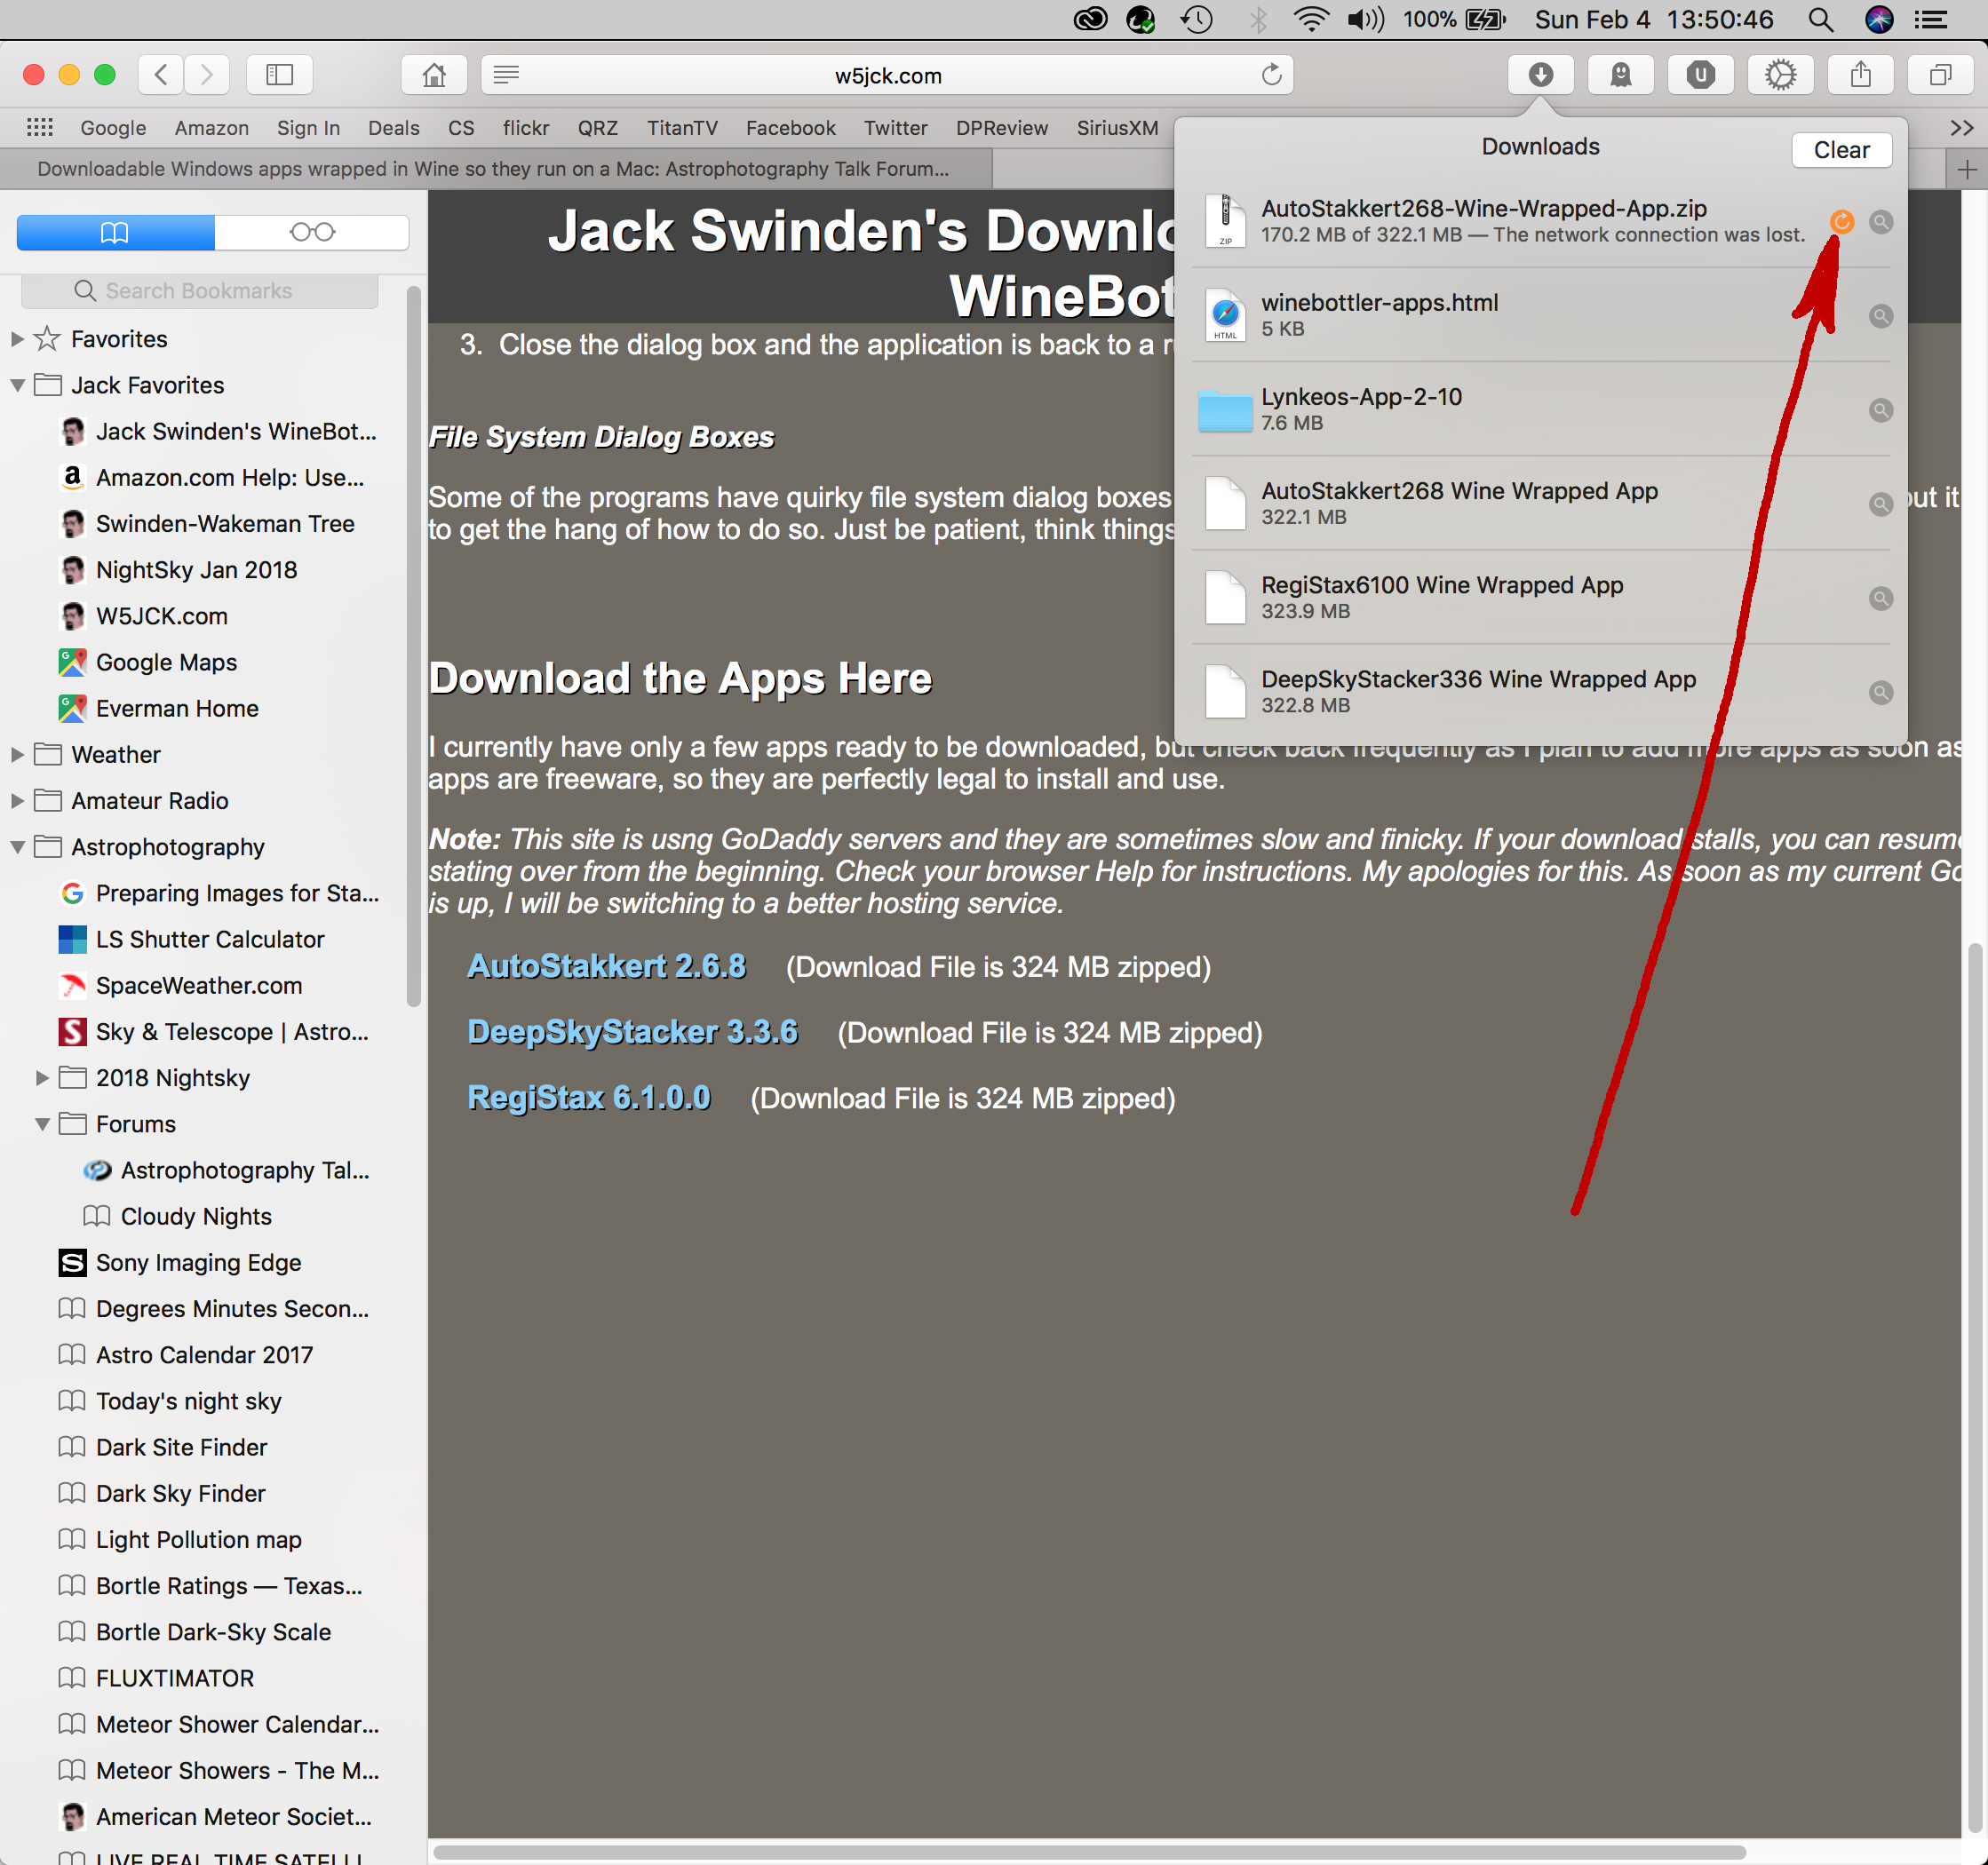 Downloadable Windows apps wrapped in Wine so they run on a Mac